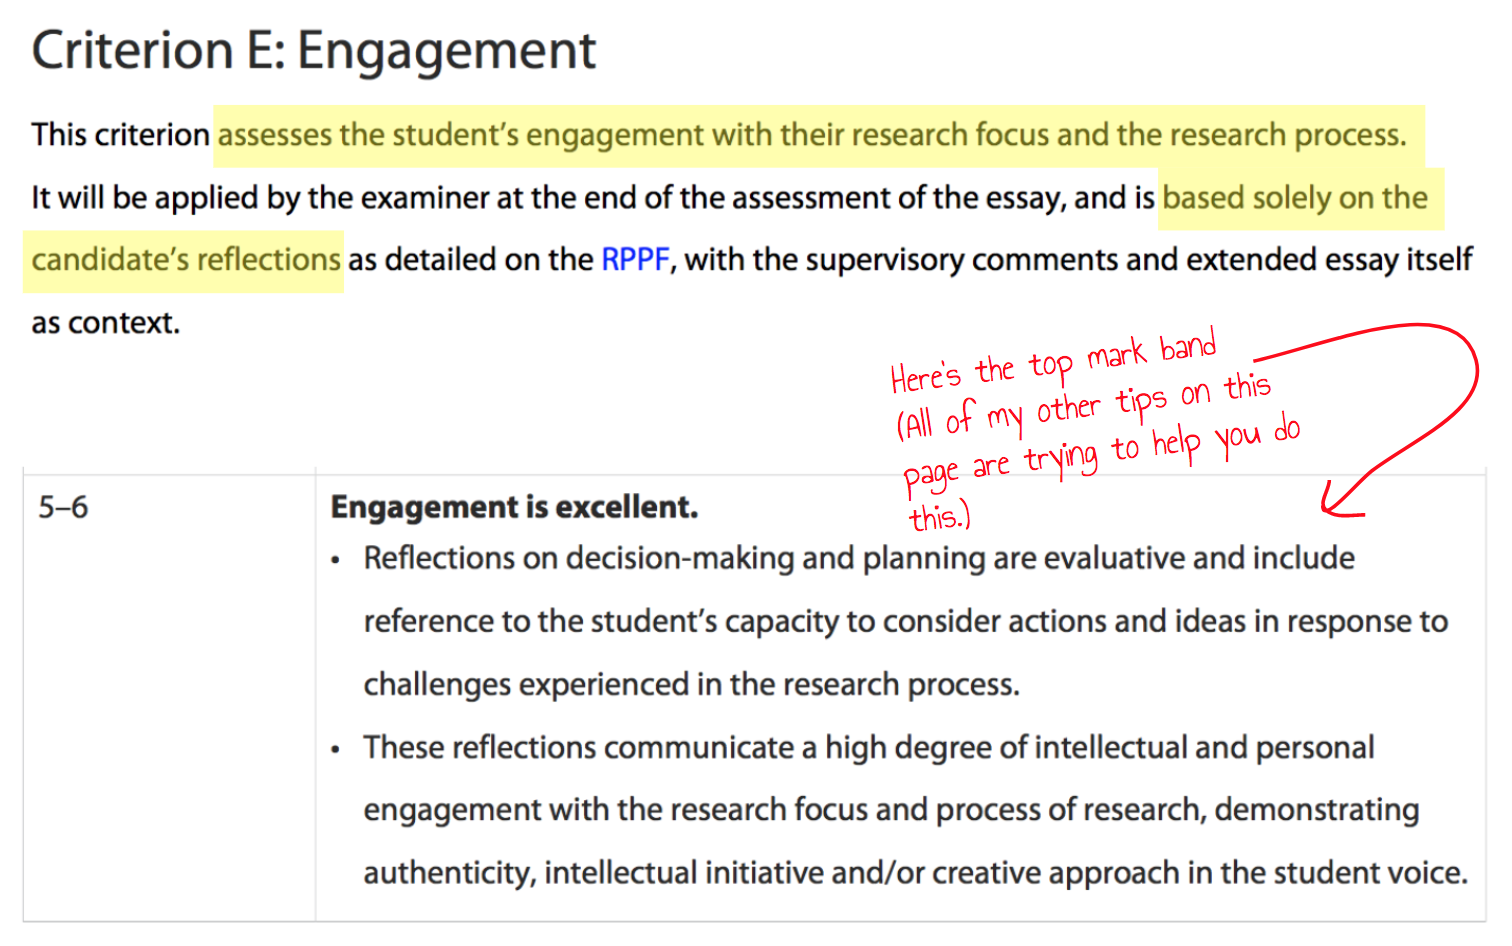 026 Tok Essay Rubric Example Lhhkxge9q7mirooowugt Screen Shot 2018 05 At 5 15 Pm Stupendous Extended 2019 2016 Full